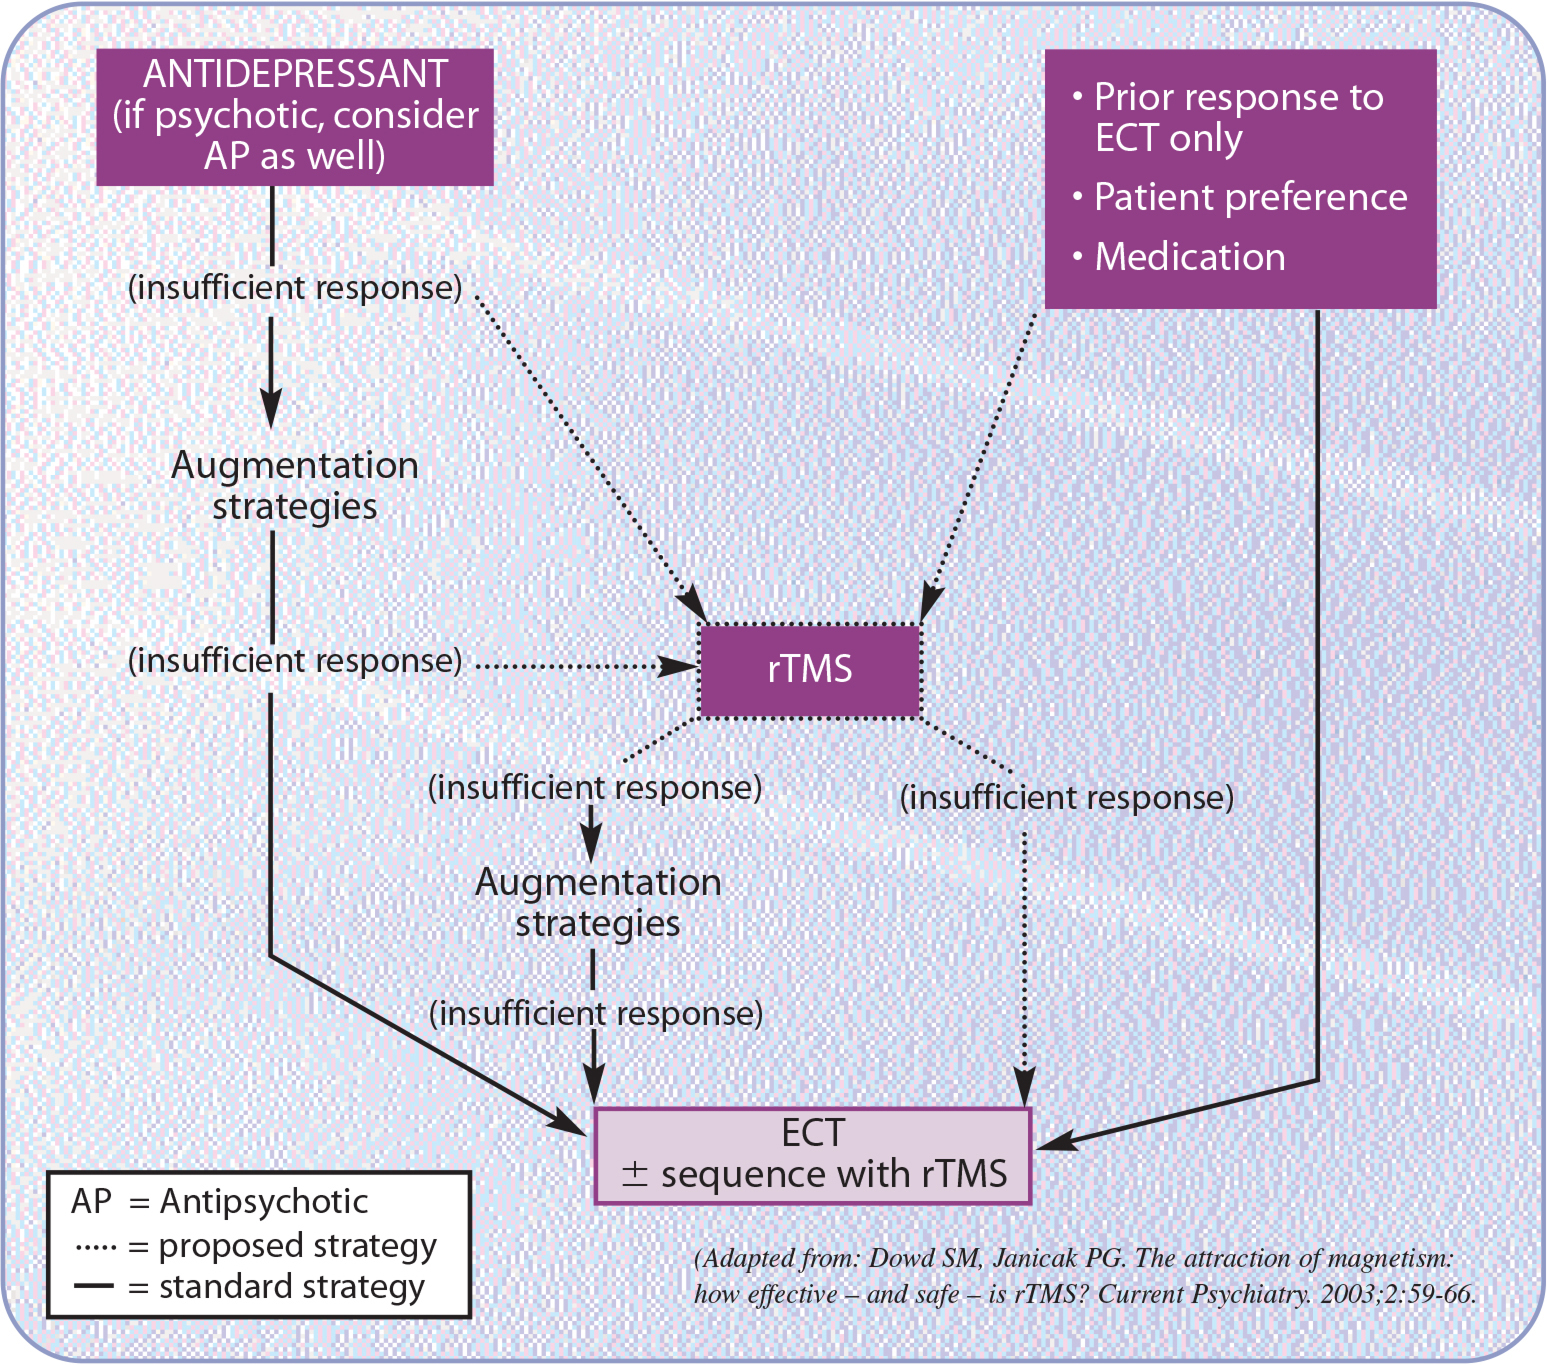 Potential role of rTMS in treating a major depressive episode.